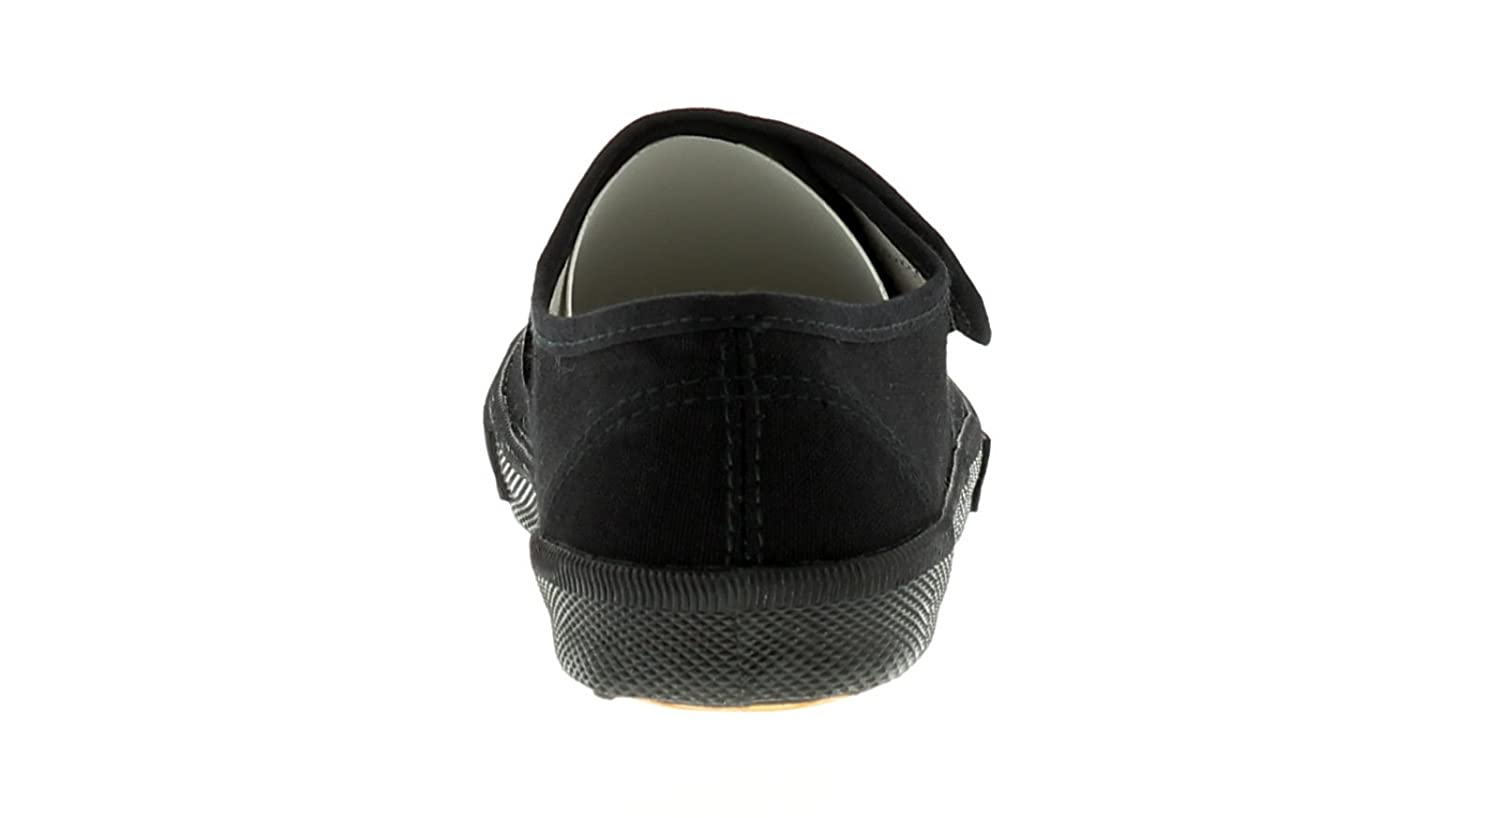 485a79077a8e Wynsors New Childrens Black Touch Fasten School Pumps (Please Note Sizes 5-3)  - Black - UK Sizes 1-13  Amazon.co.uk  Shoes   Bags